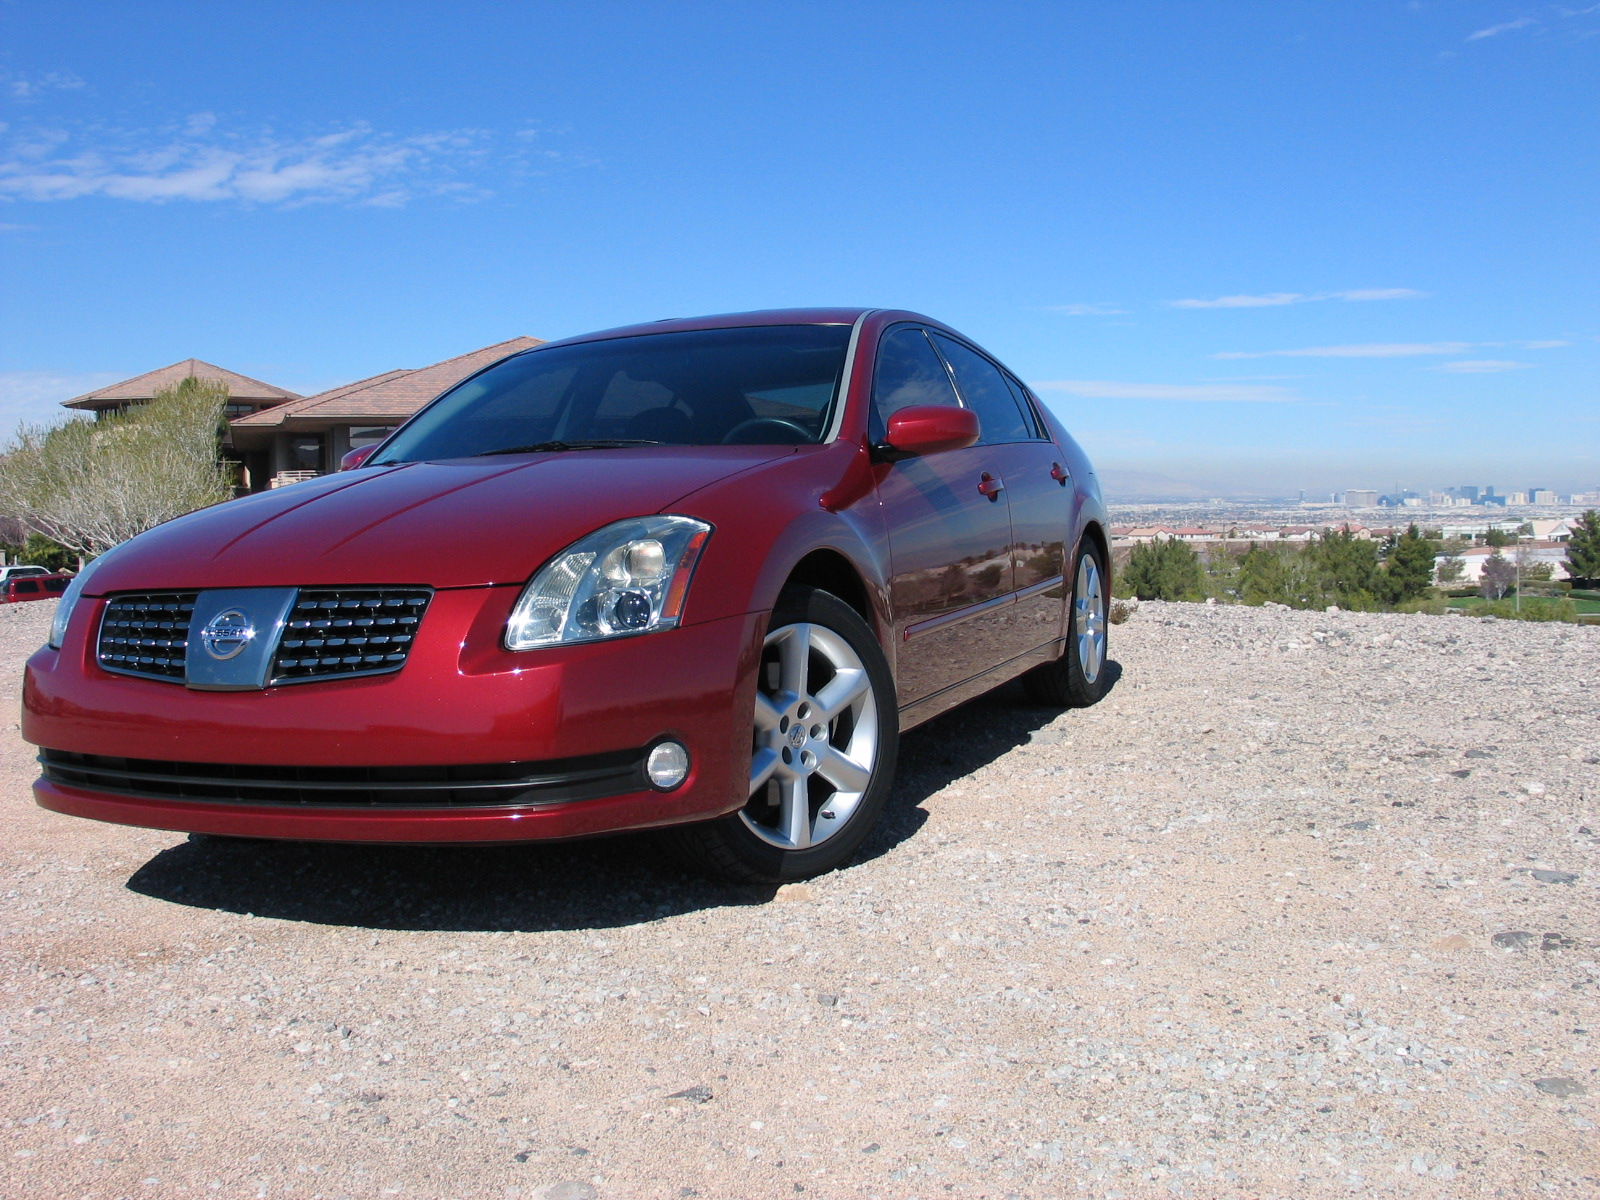 2005 nissan maxima se picture mods upgrades